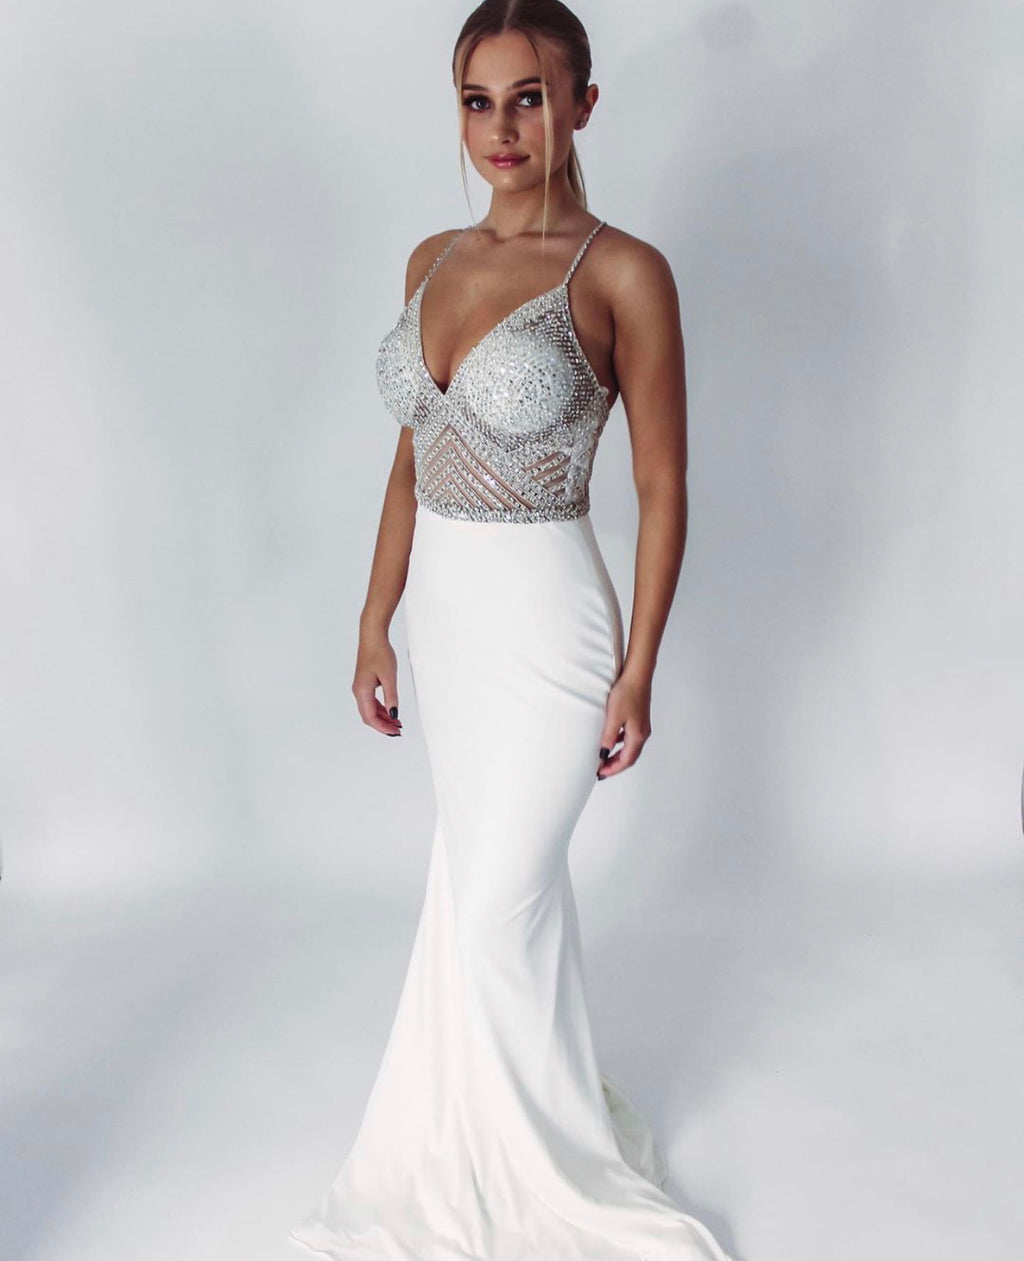 Jovani Sample Gown - Off White